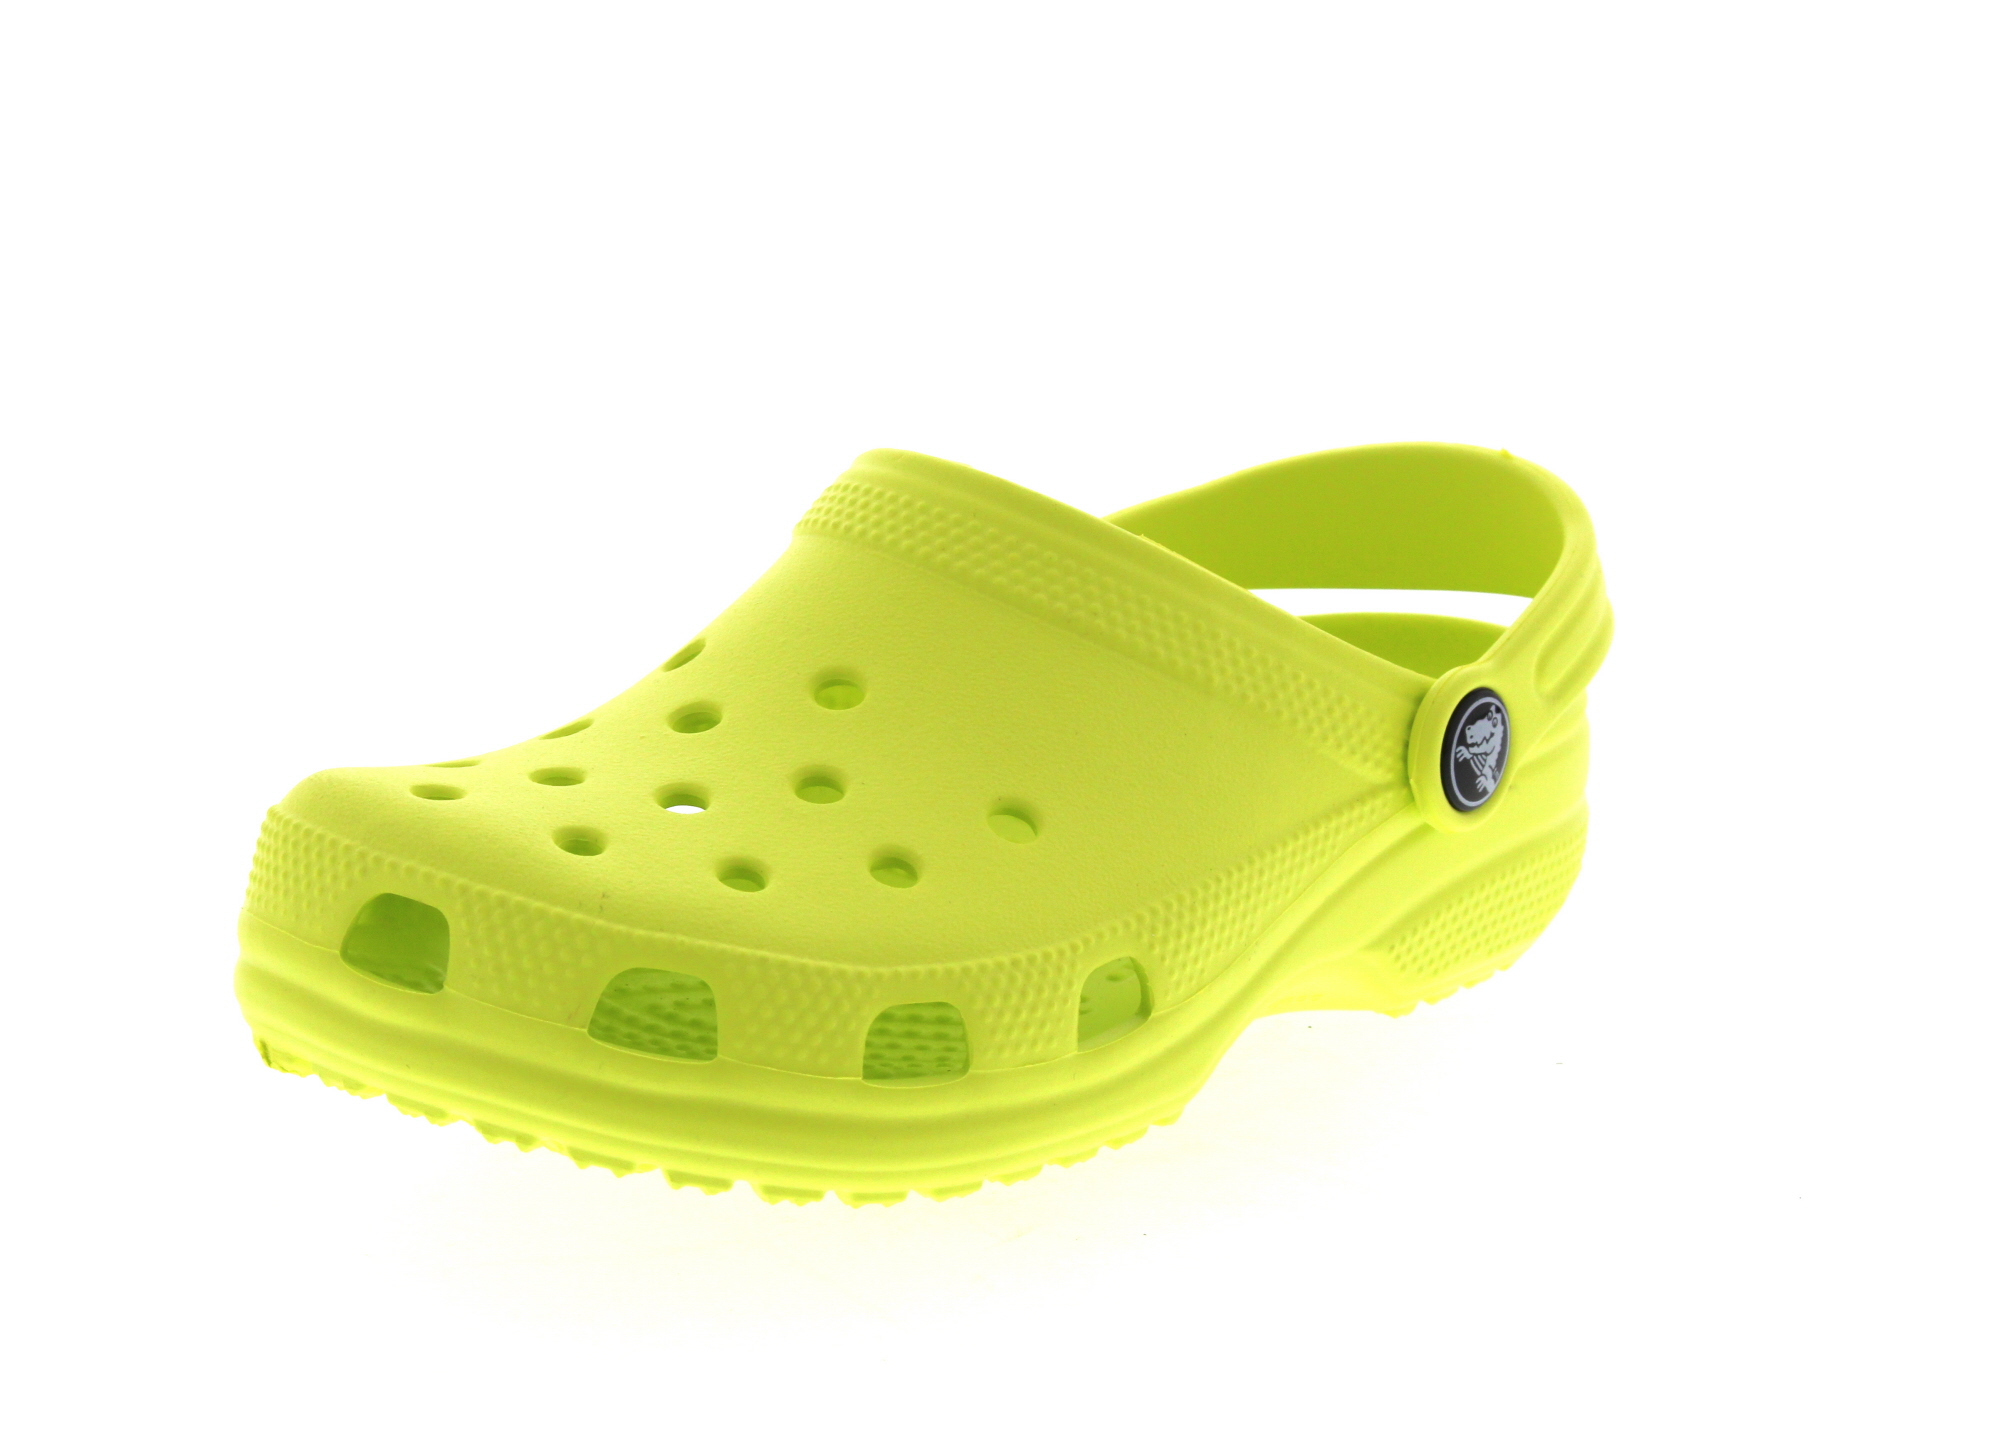 CROCS Kinderschuhe - CLASSIC KIDS - citrus_0